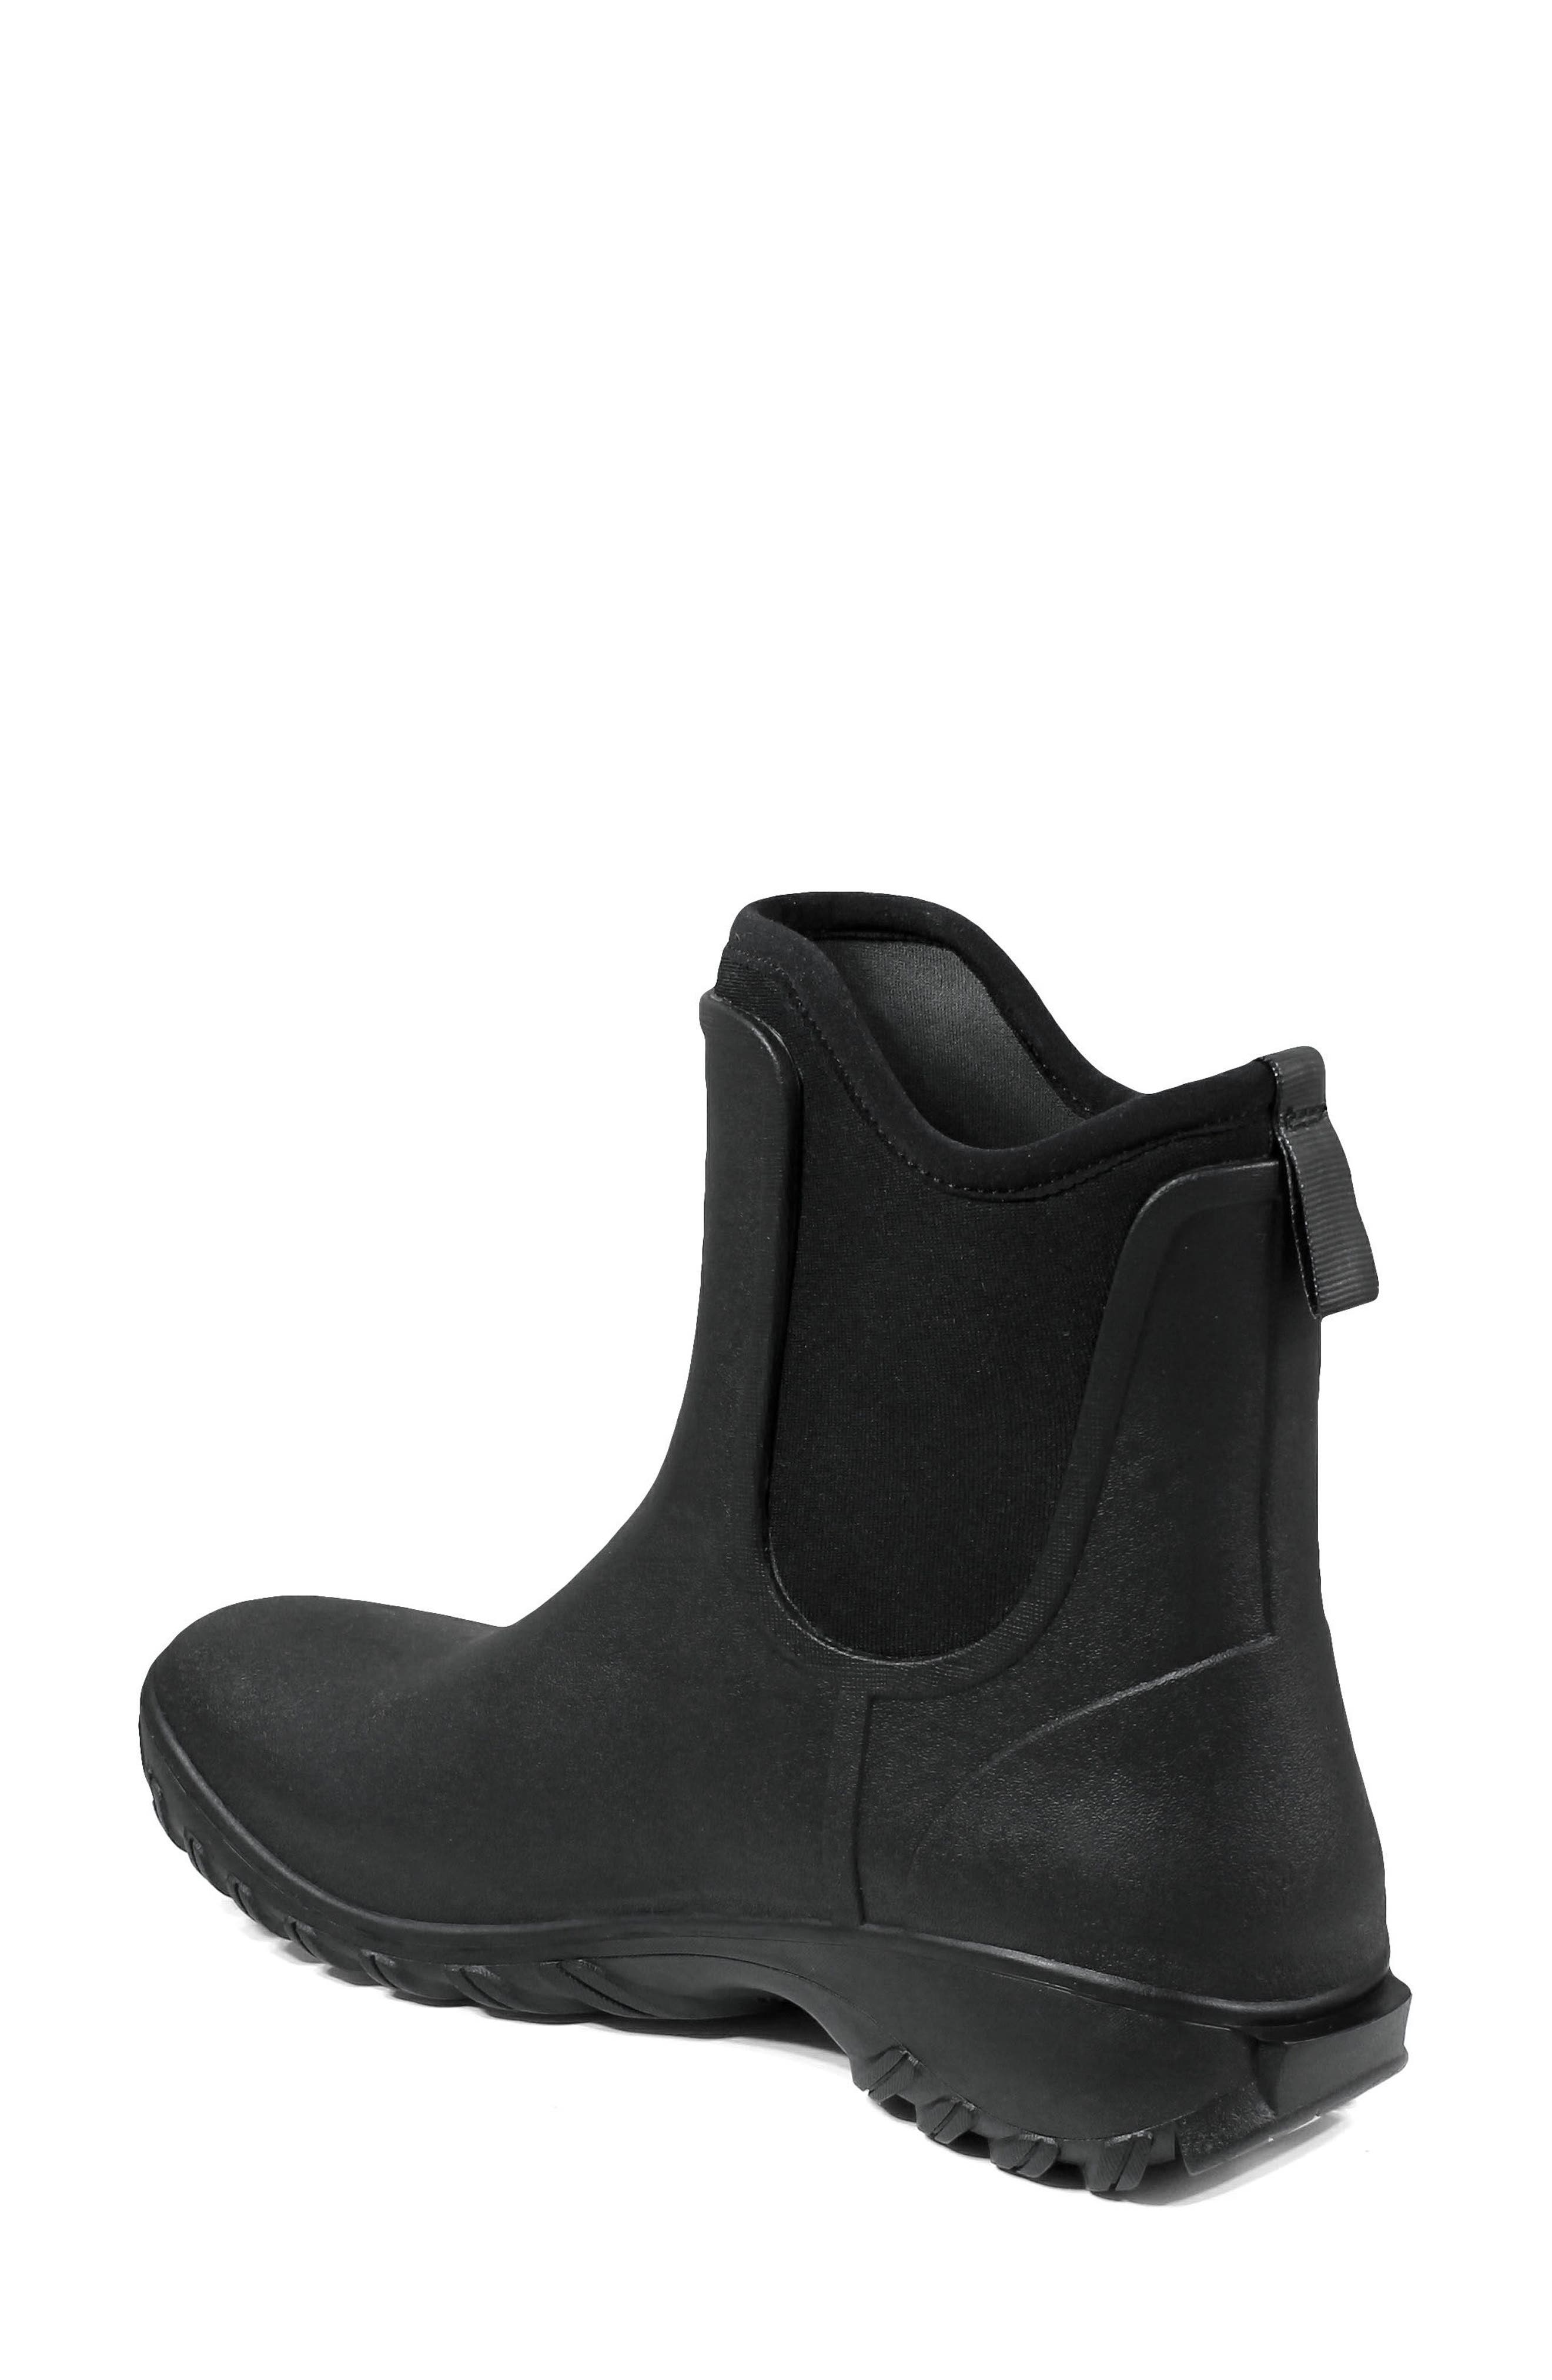 BOGS, Sauvie Waterproof Chelsea Boot, Alternate thumbnail 2, color, BLACK RUBBER